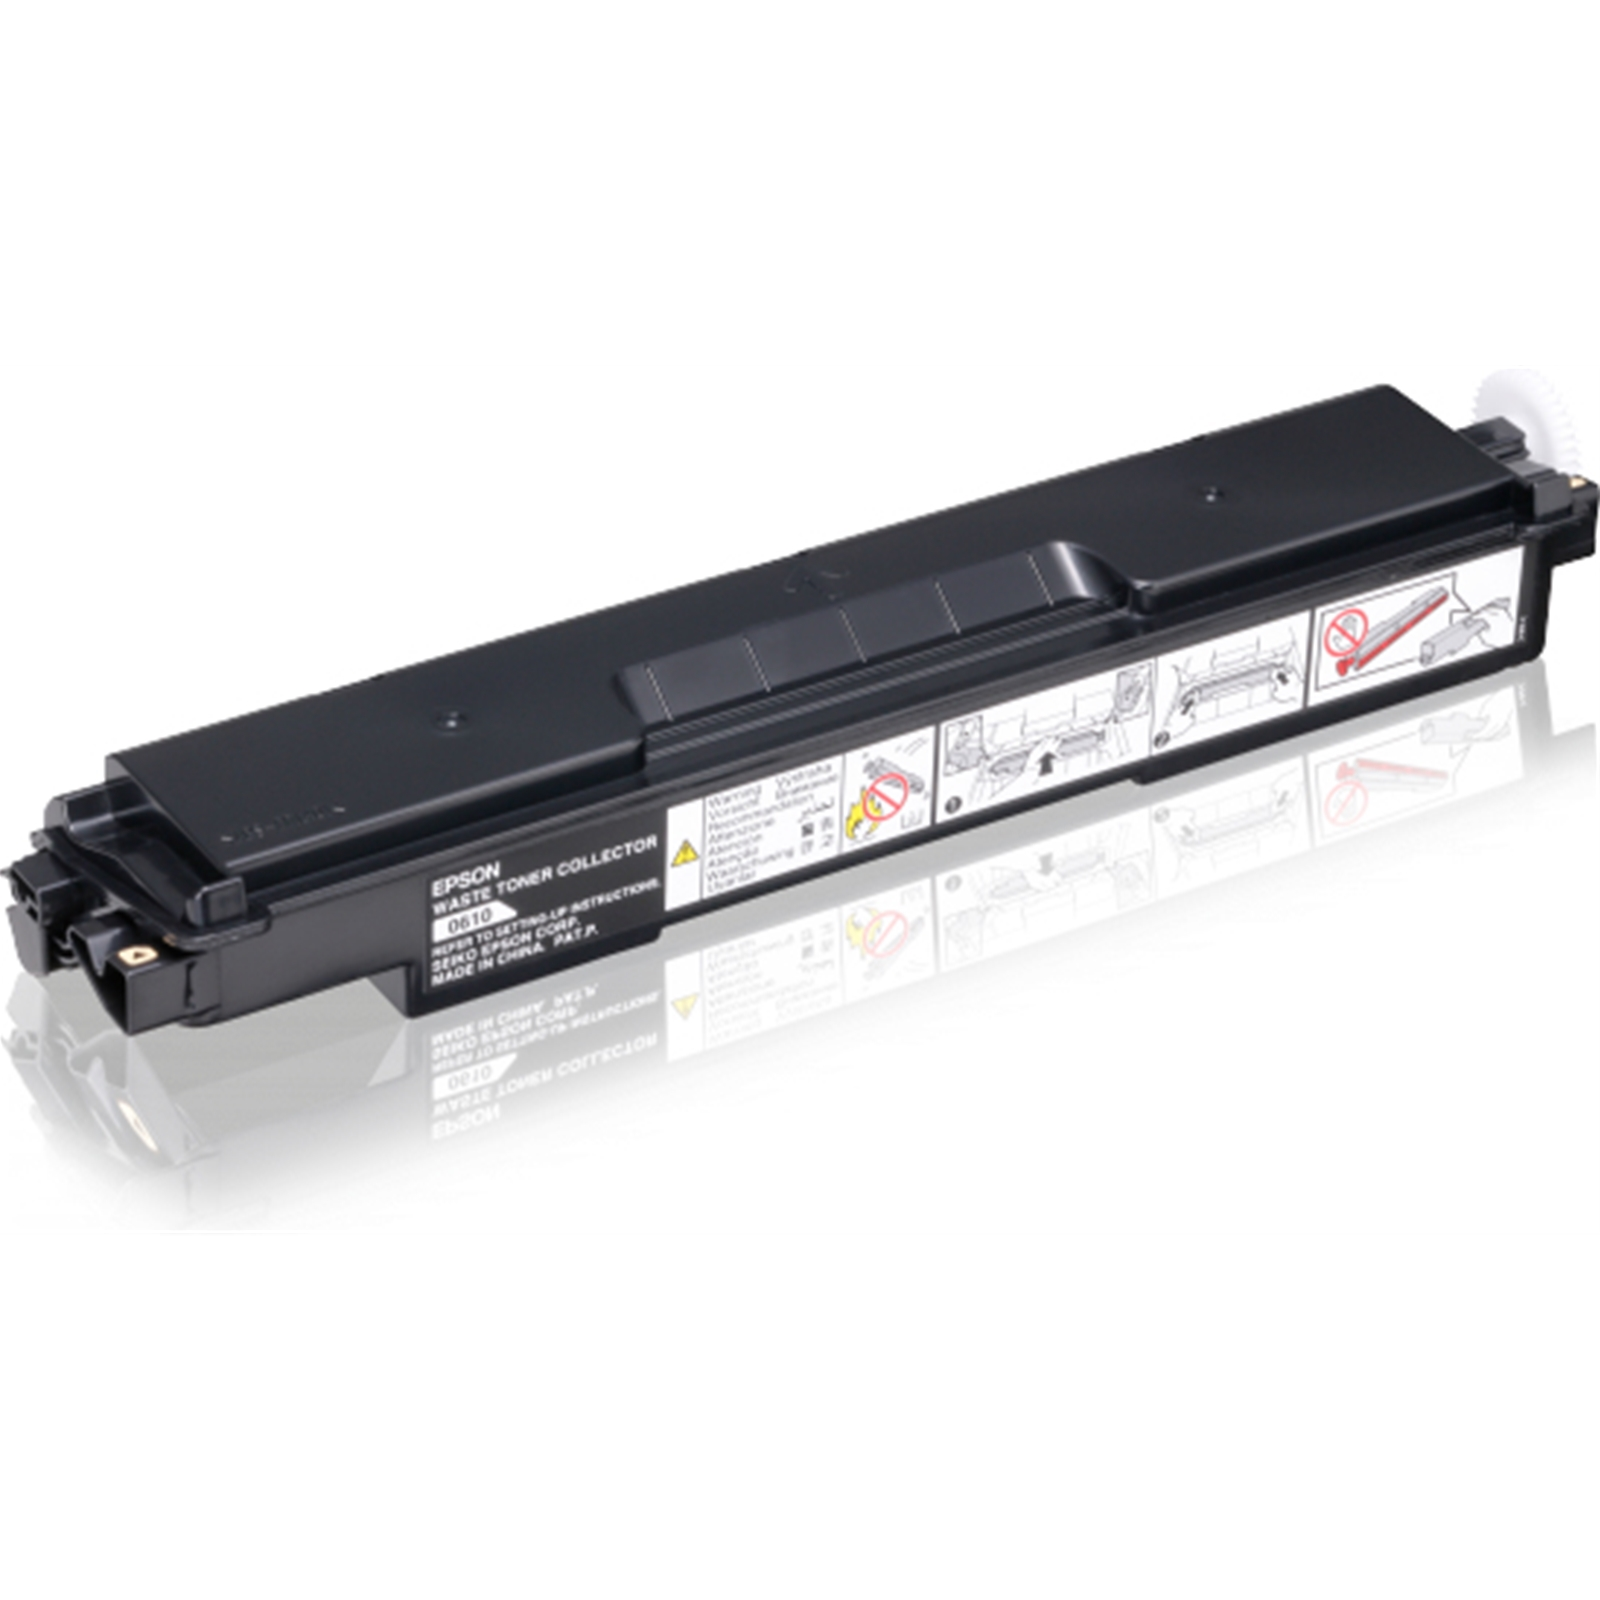 C9300N WASTE TONER COLLECTOR 24K